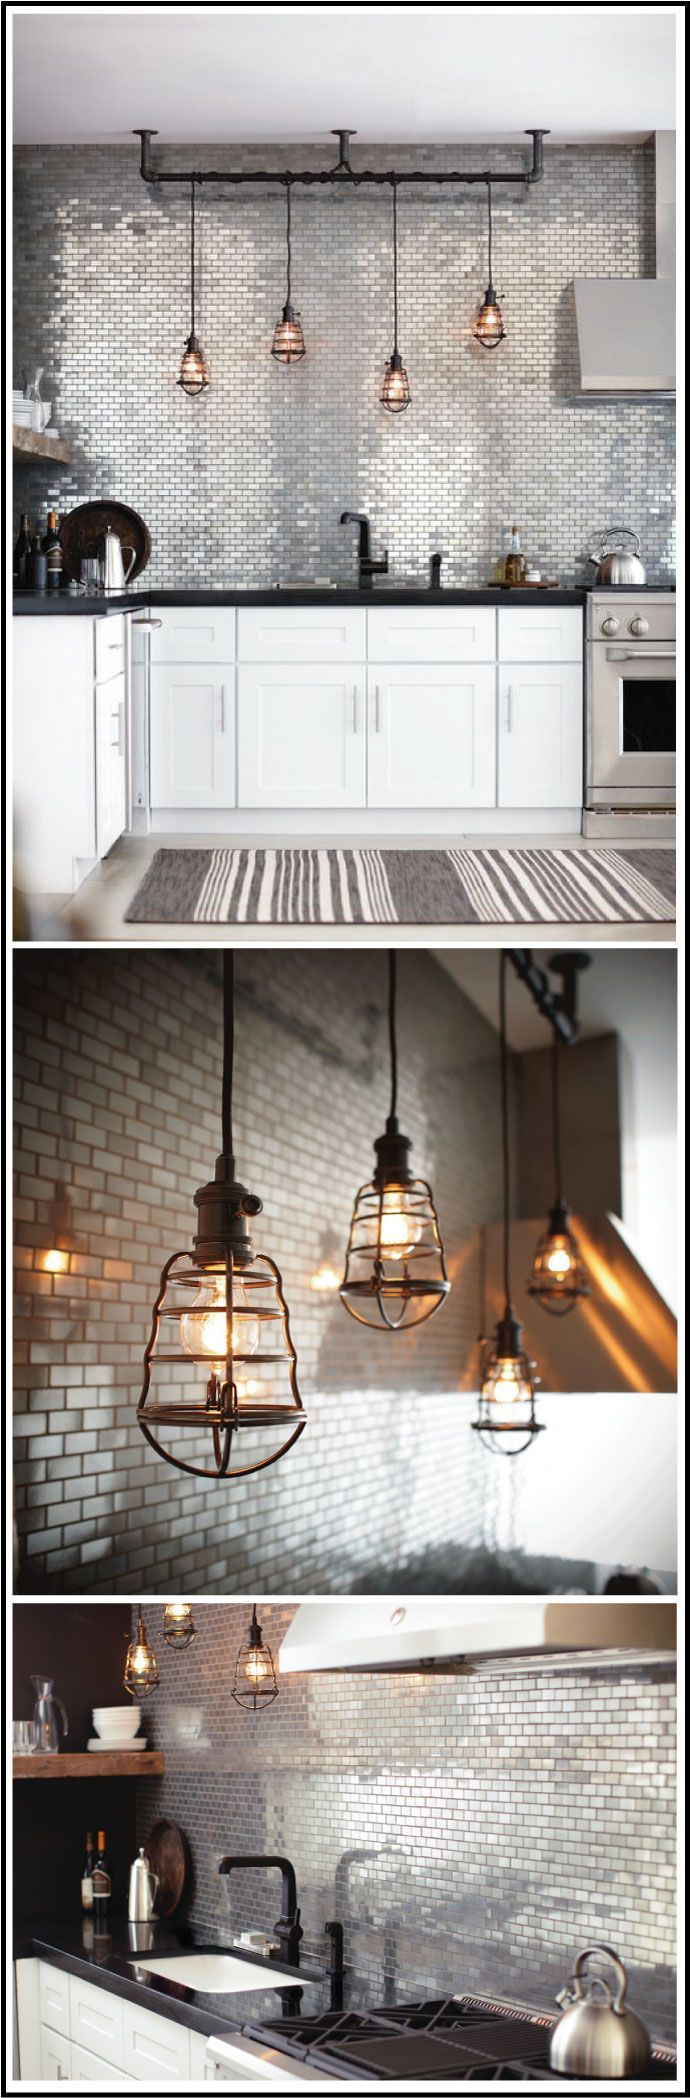 lighting Style INDUSTRIEL